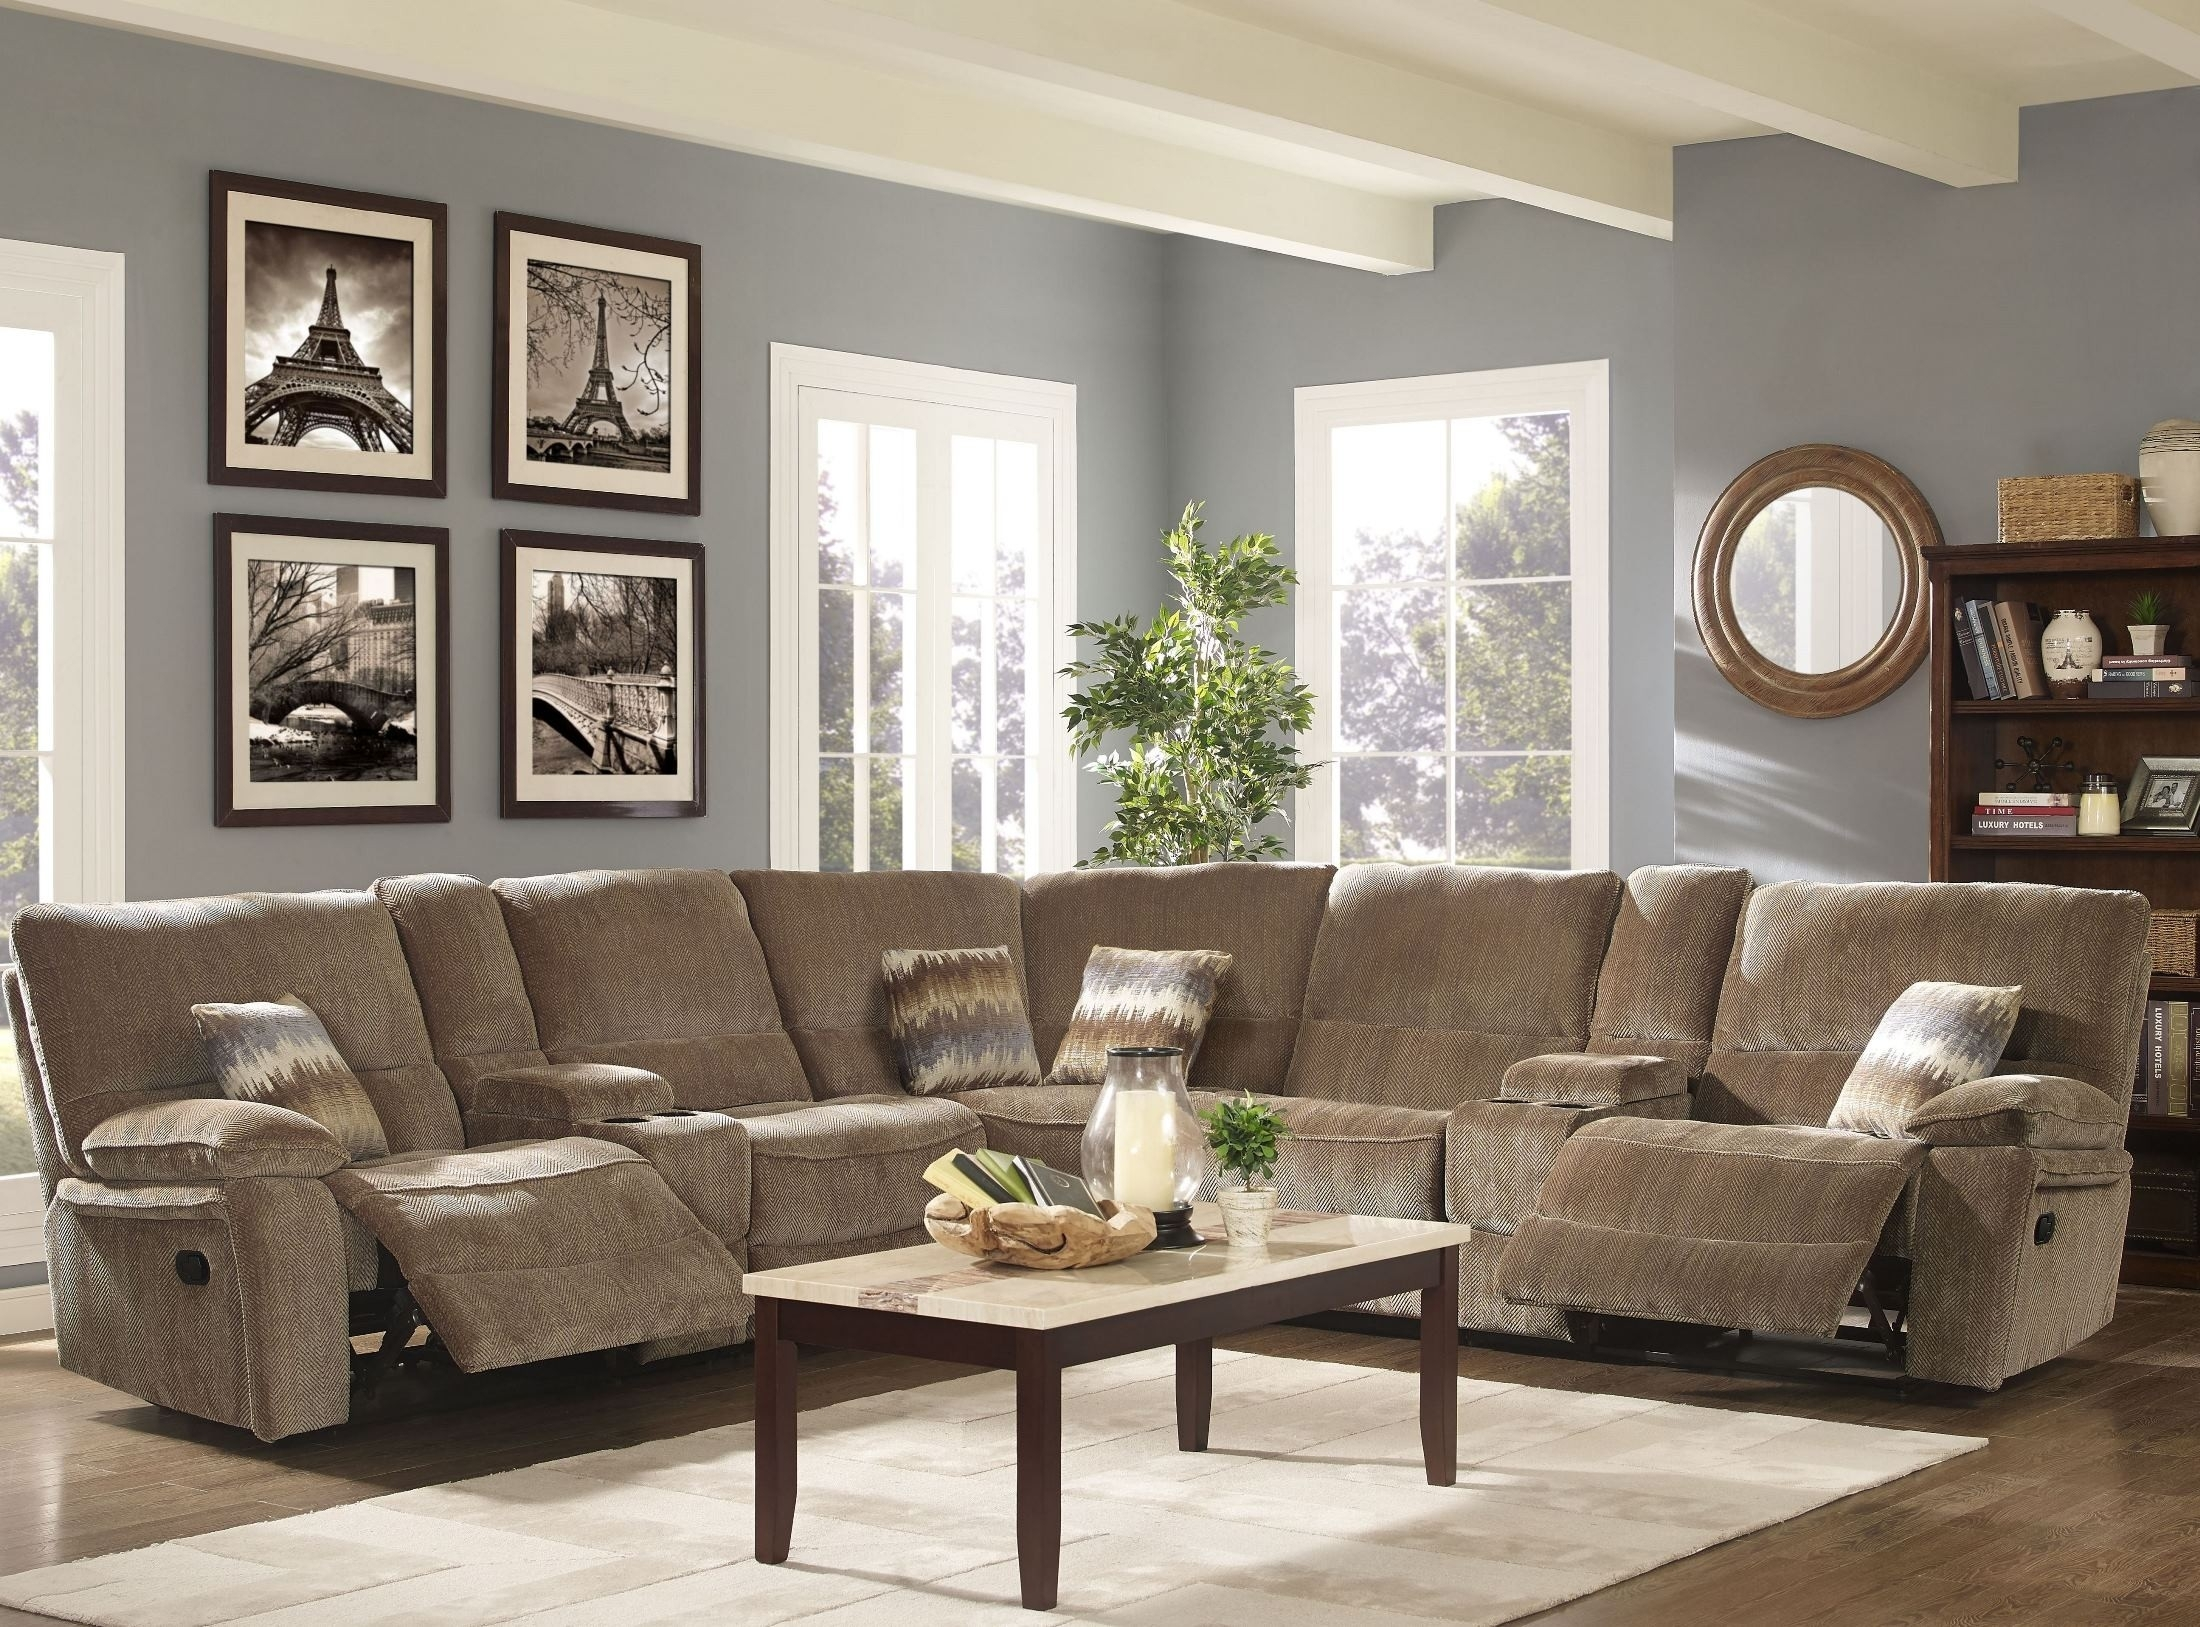 Ranger Bravo Sandalwood Power Reclining Sectional From New Classic in Turdur 3 Piece Sectionals With Laf Loveseat (Image 23 of 30)